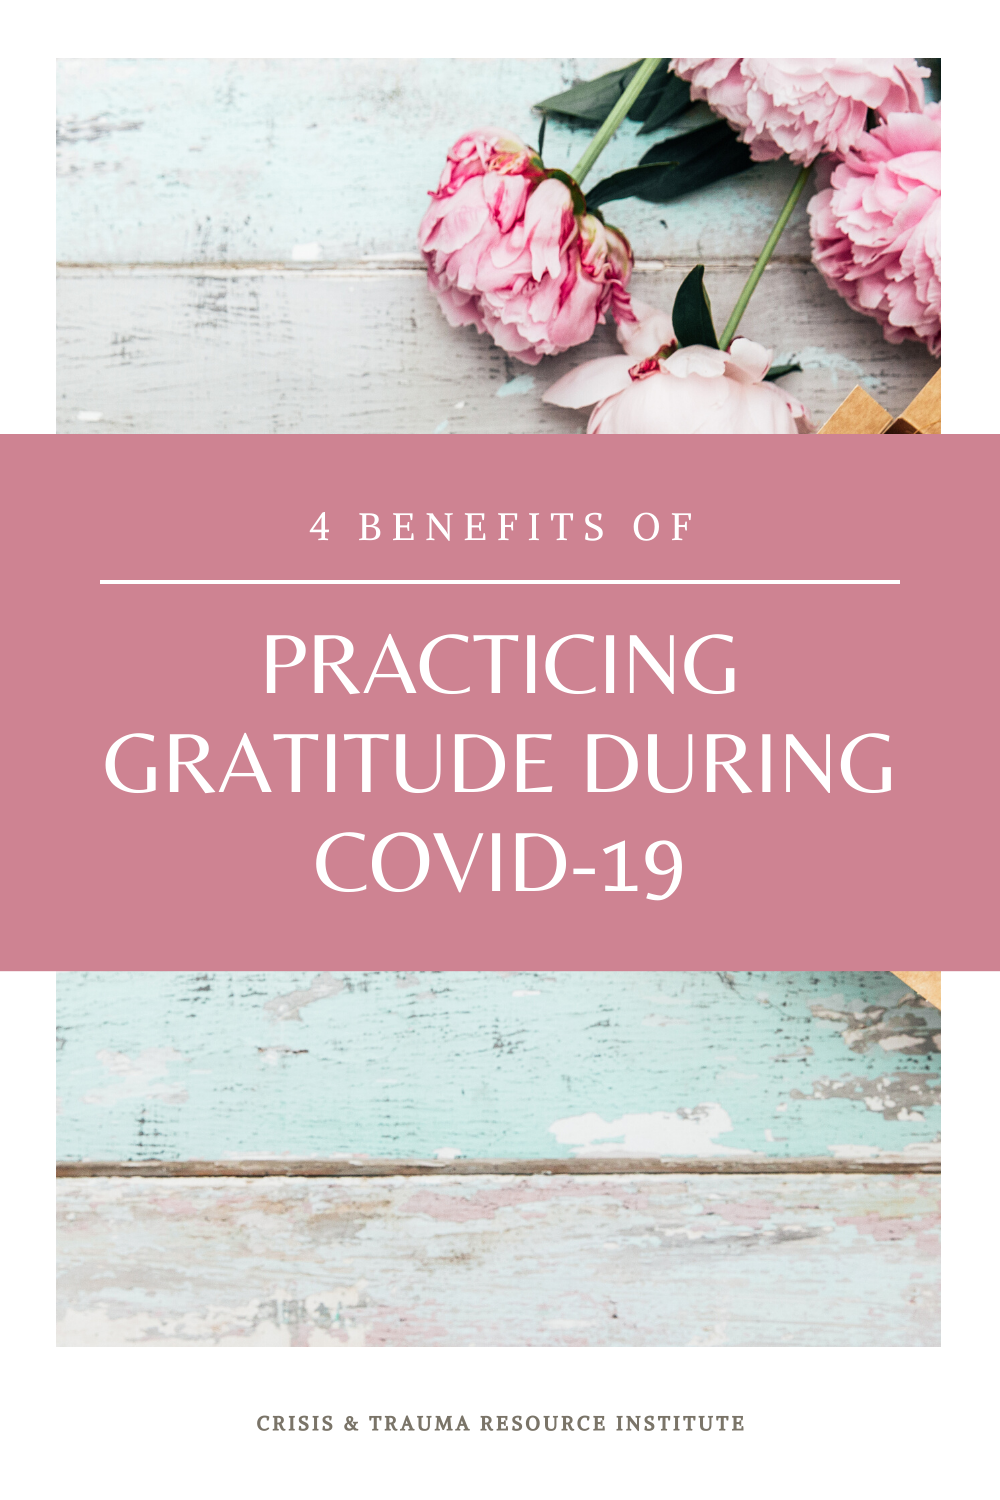 4 Benefits of Practicing Gratitude During COVID-19